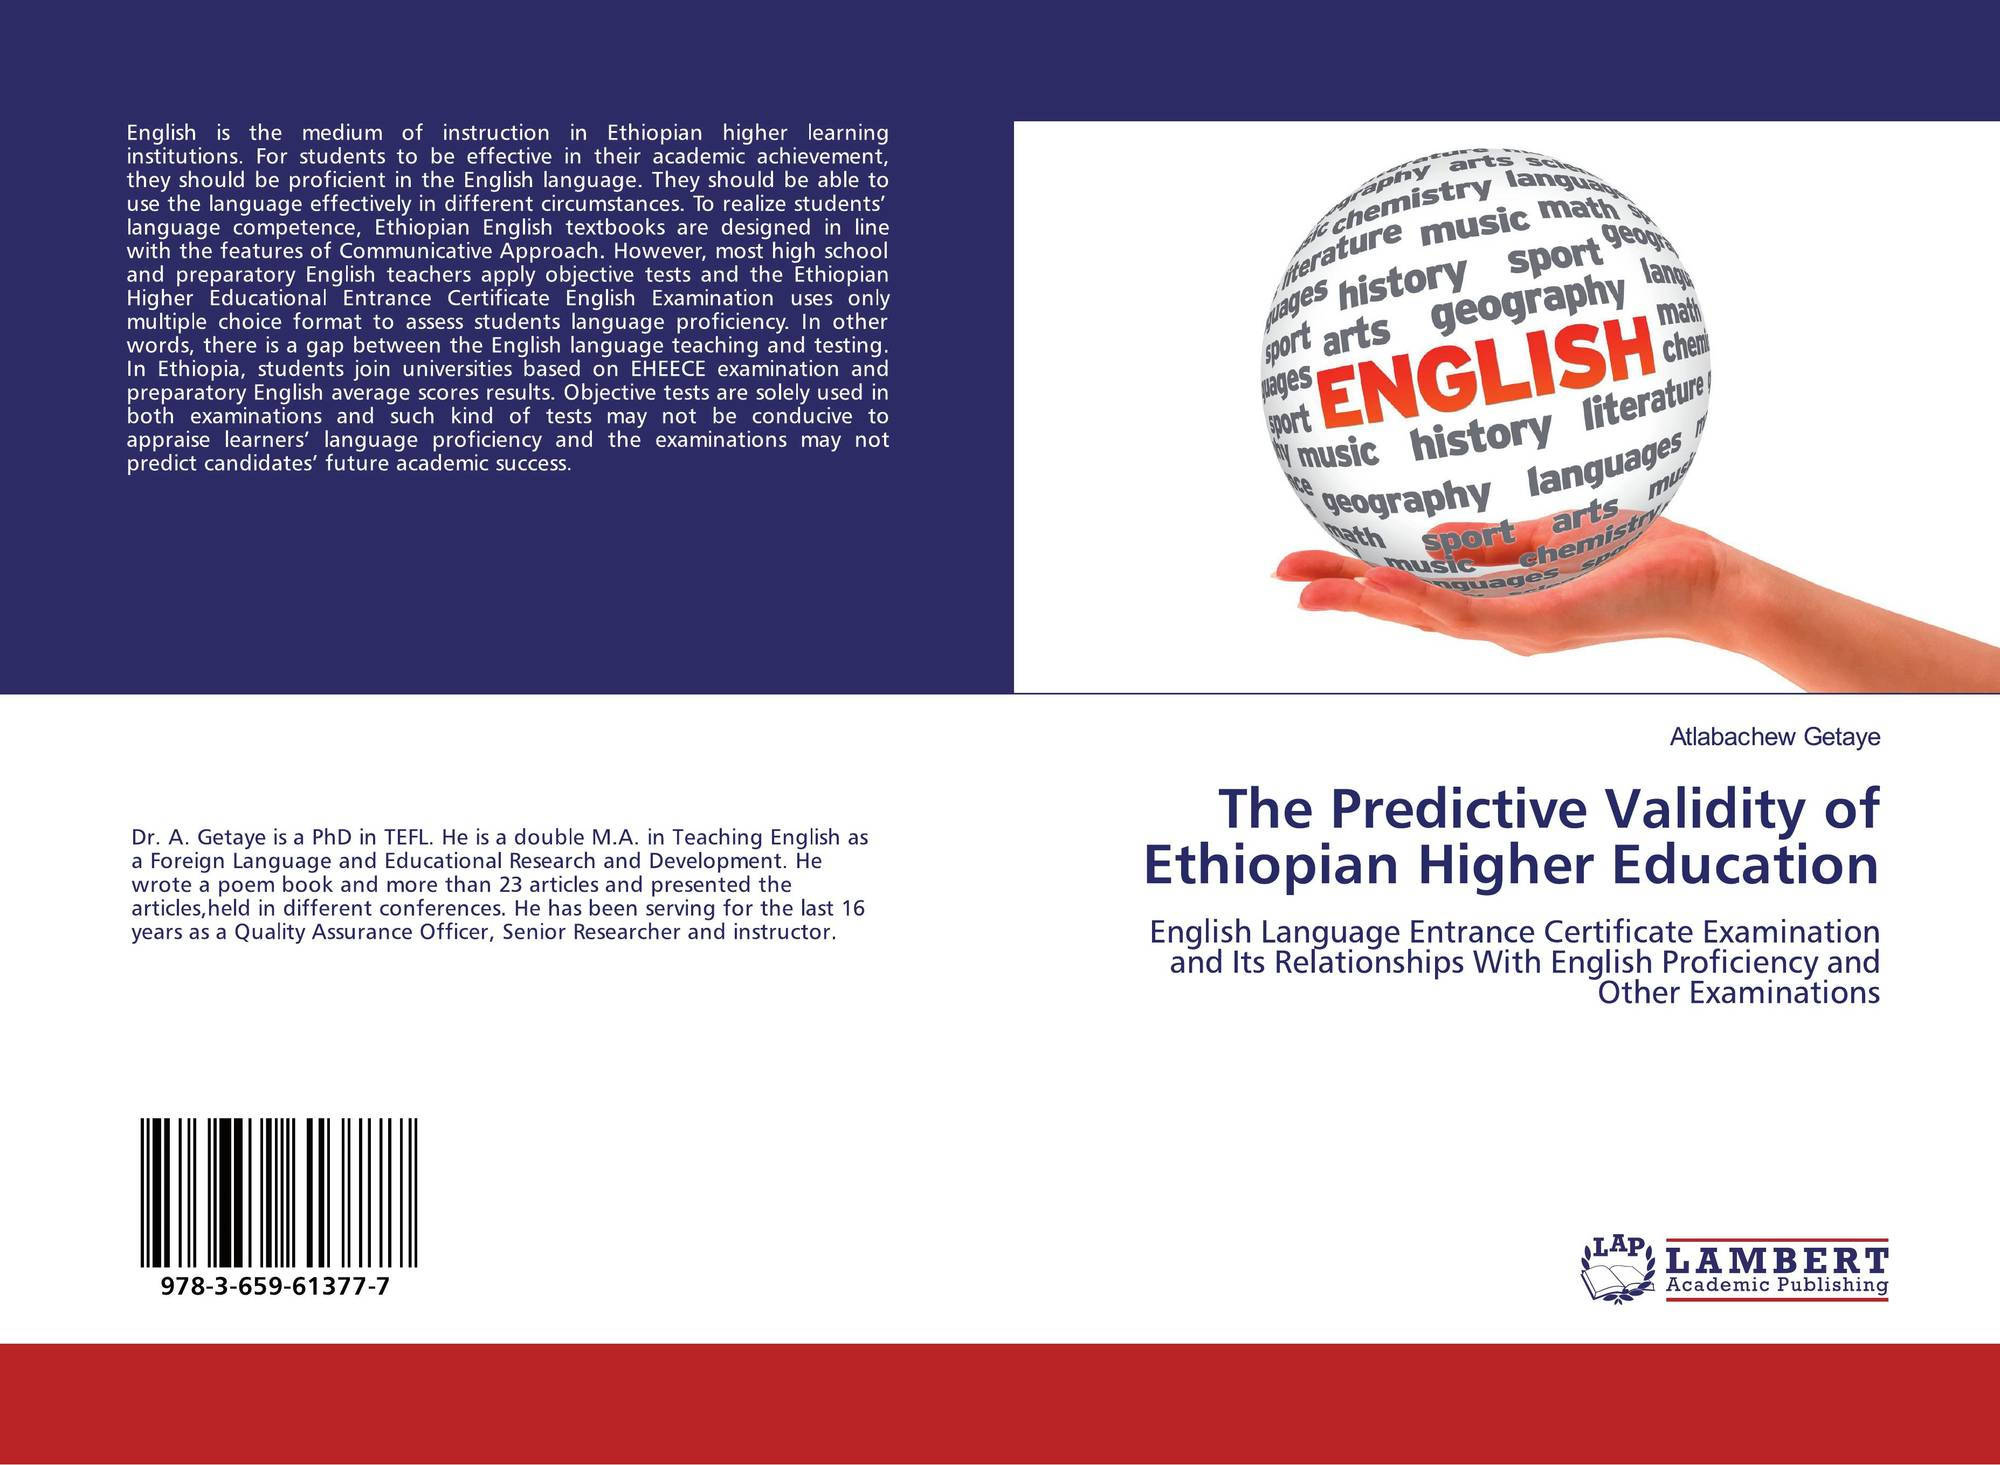 The Predictive Validity of Ethiopian Higher Education, 978-3